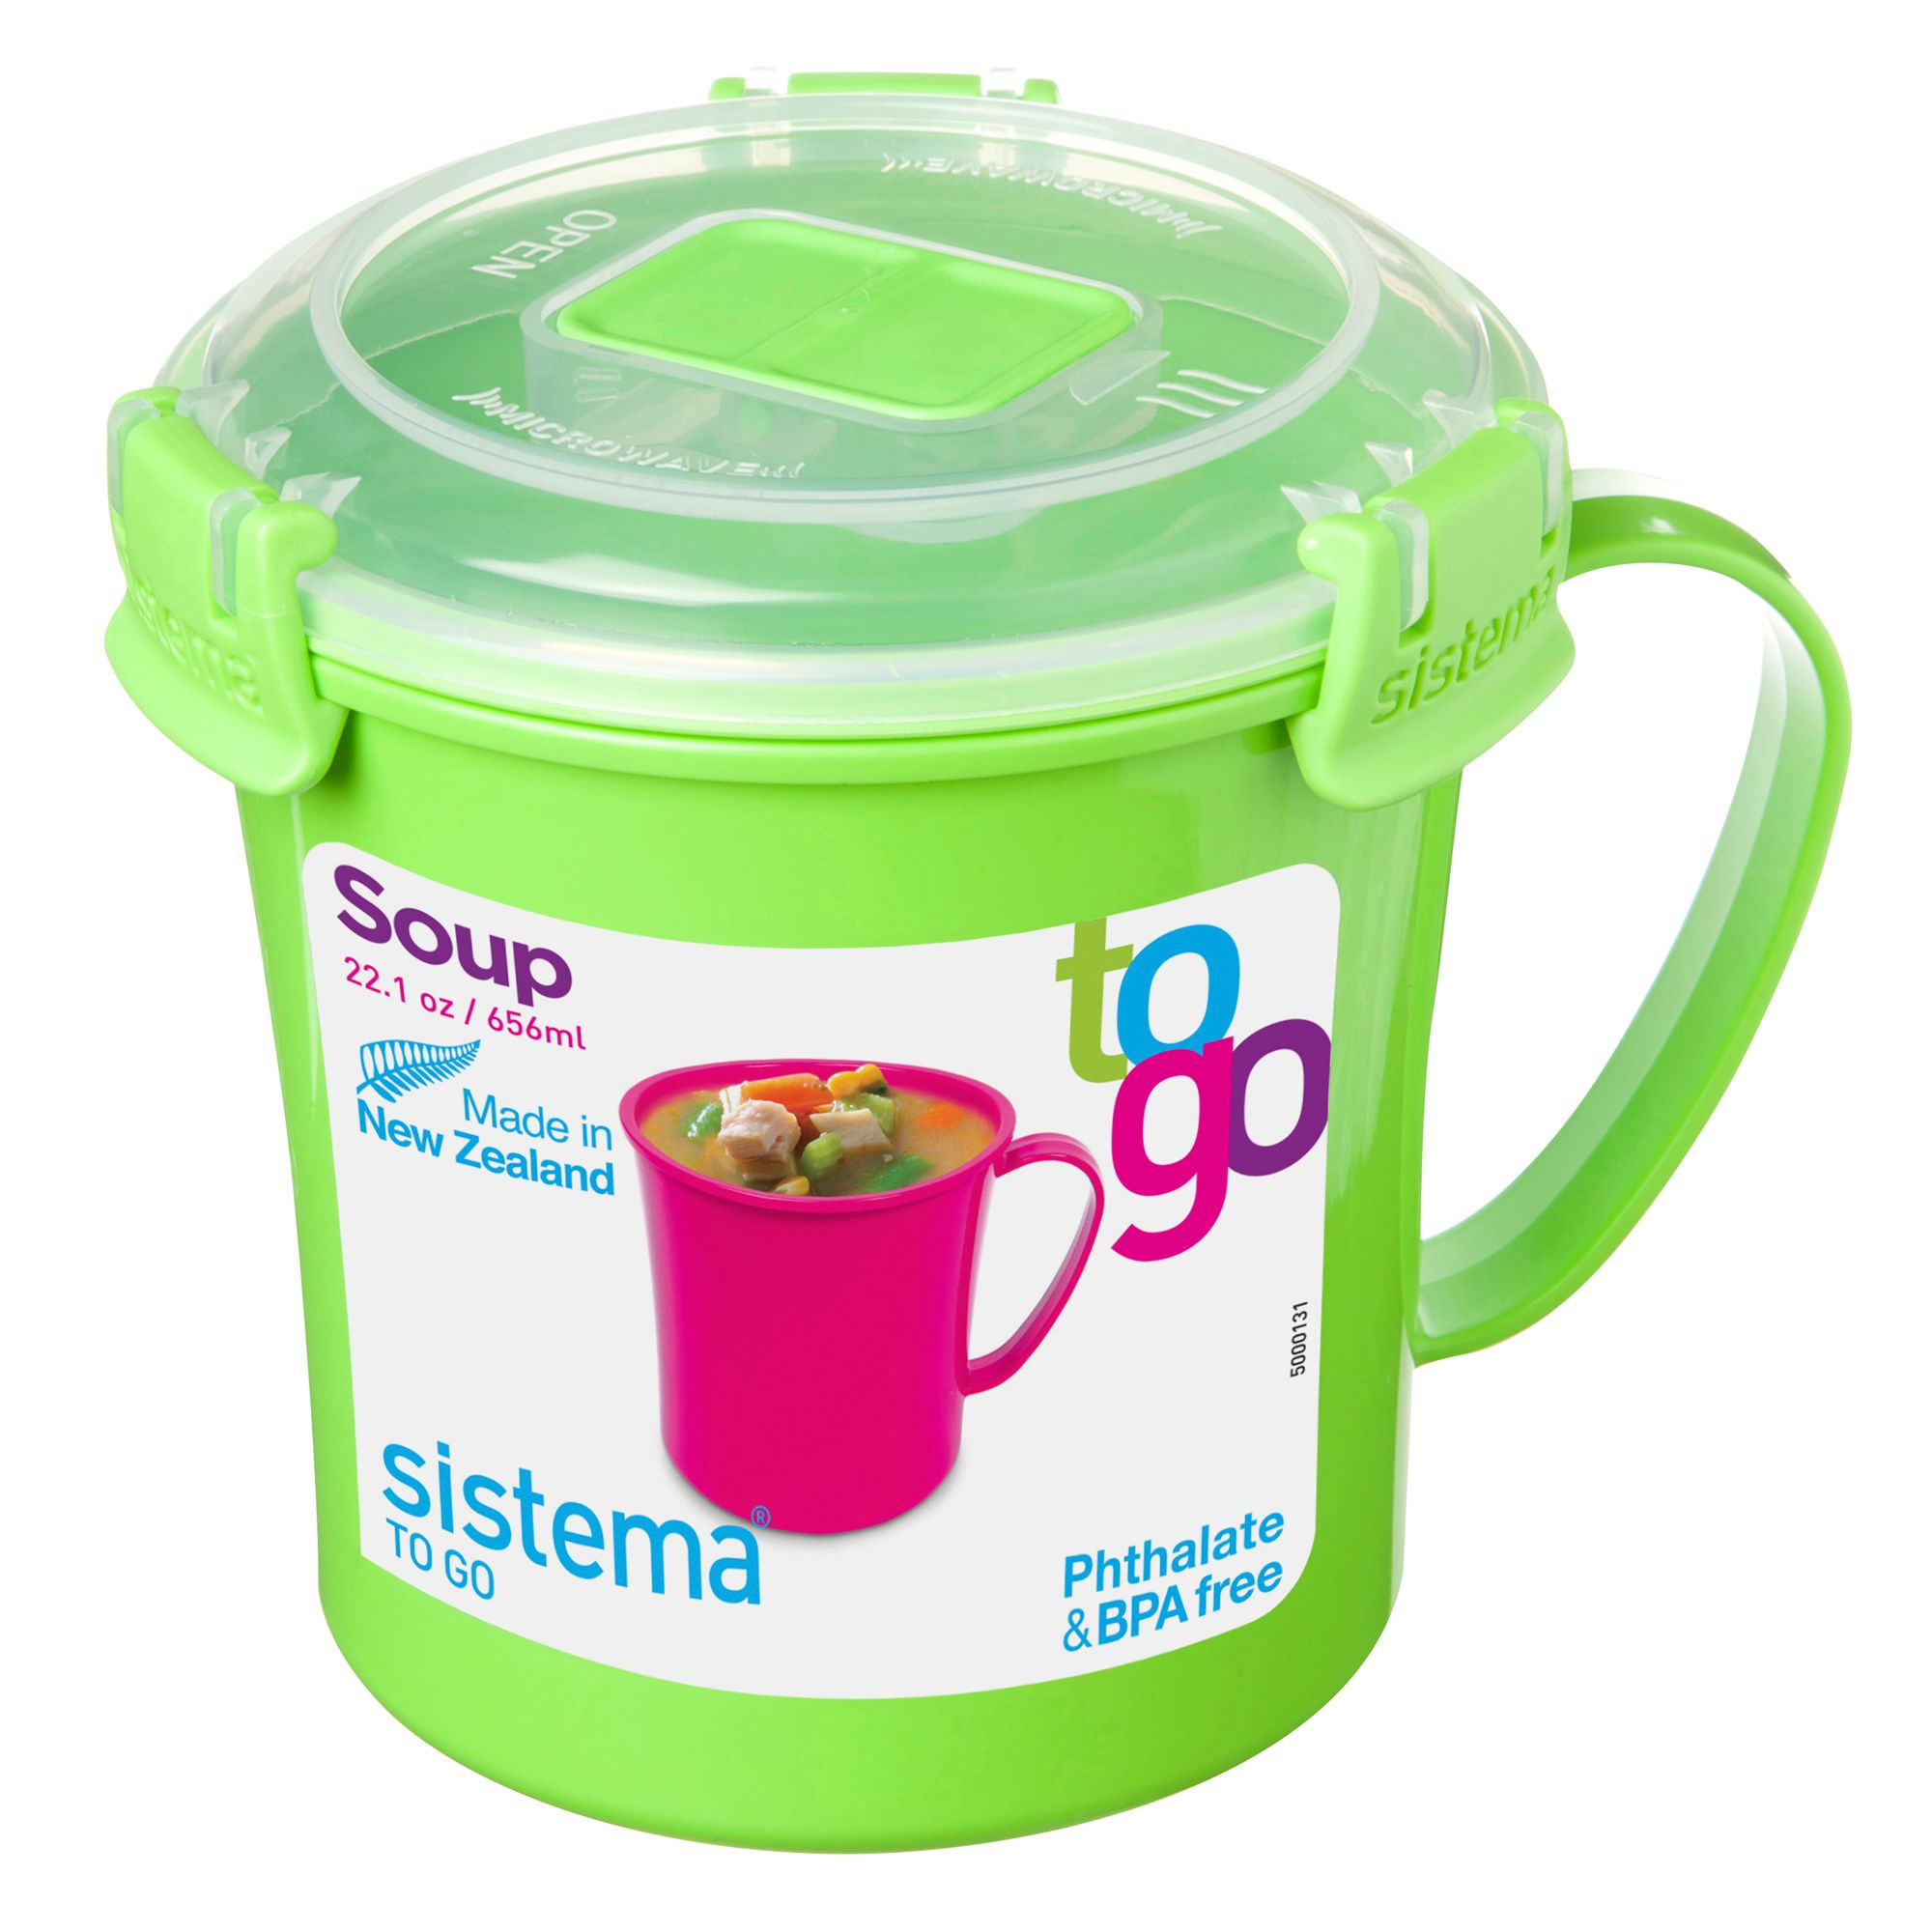 sistema kids 39 soup to go 39 lunch box 656ml from debenhams ebay. Black Bedroom Furniture Sets. Home Design Ideas